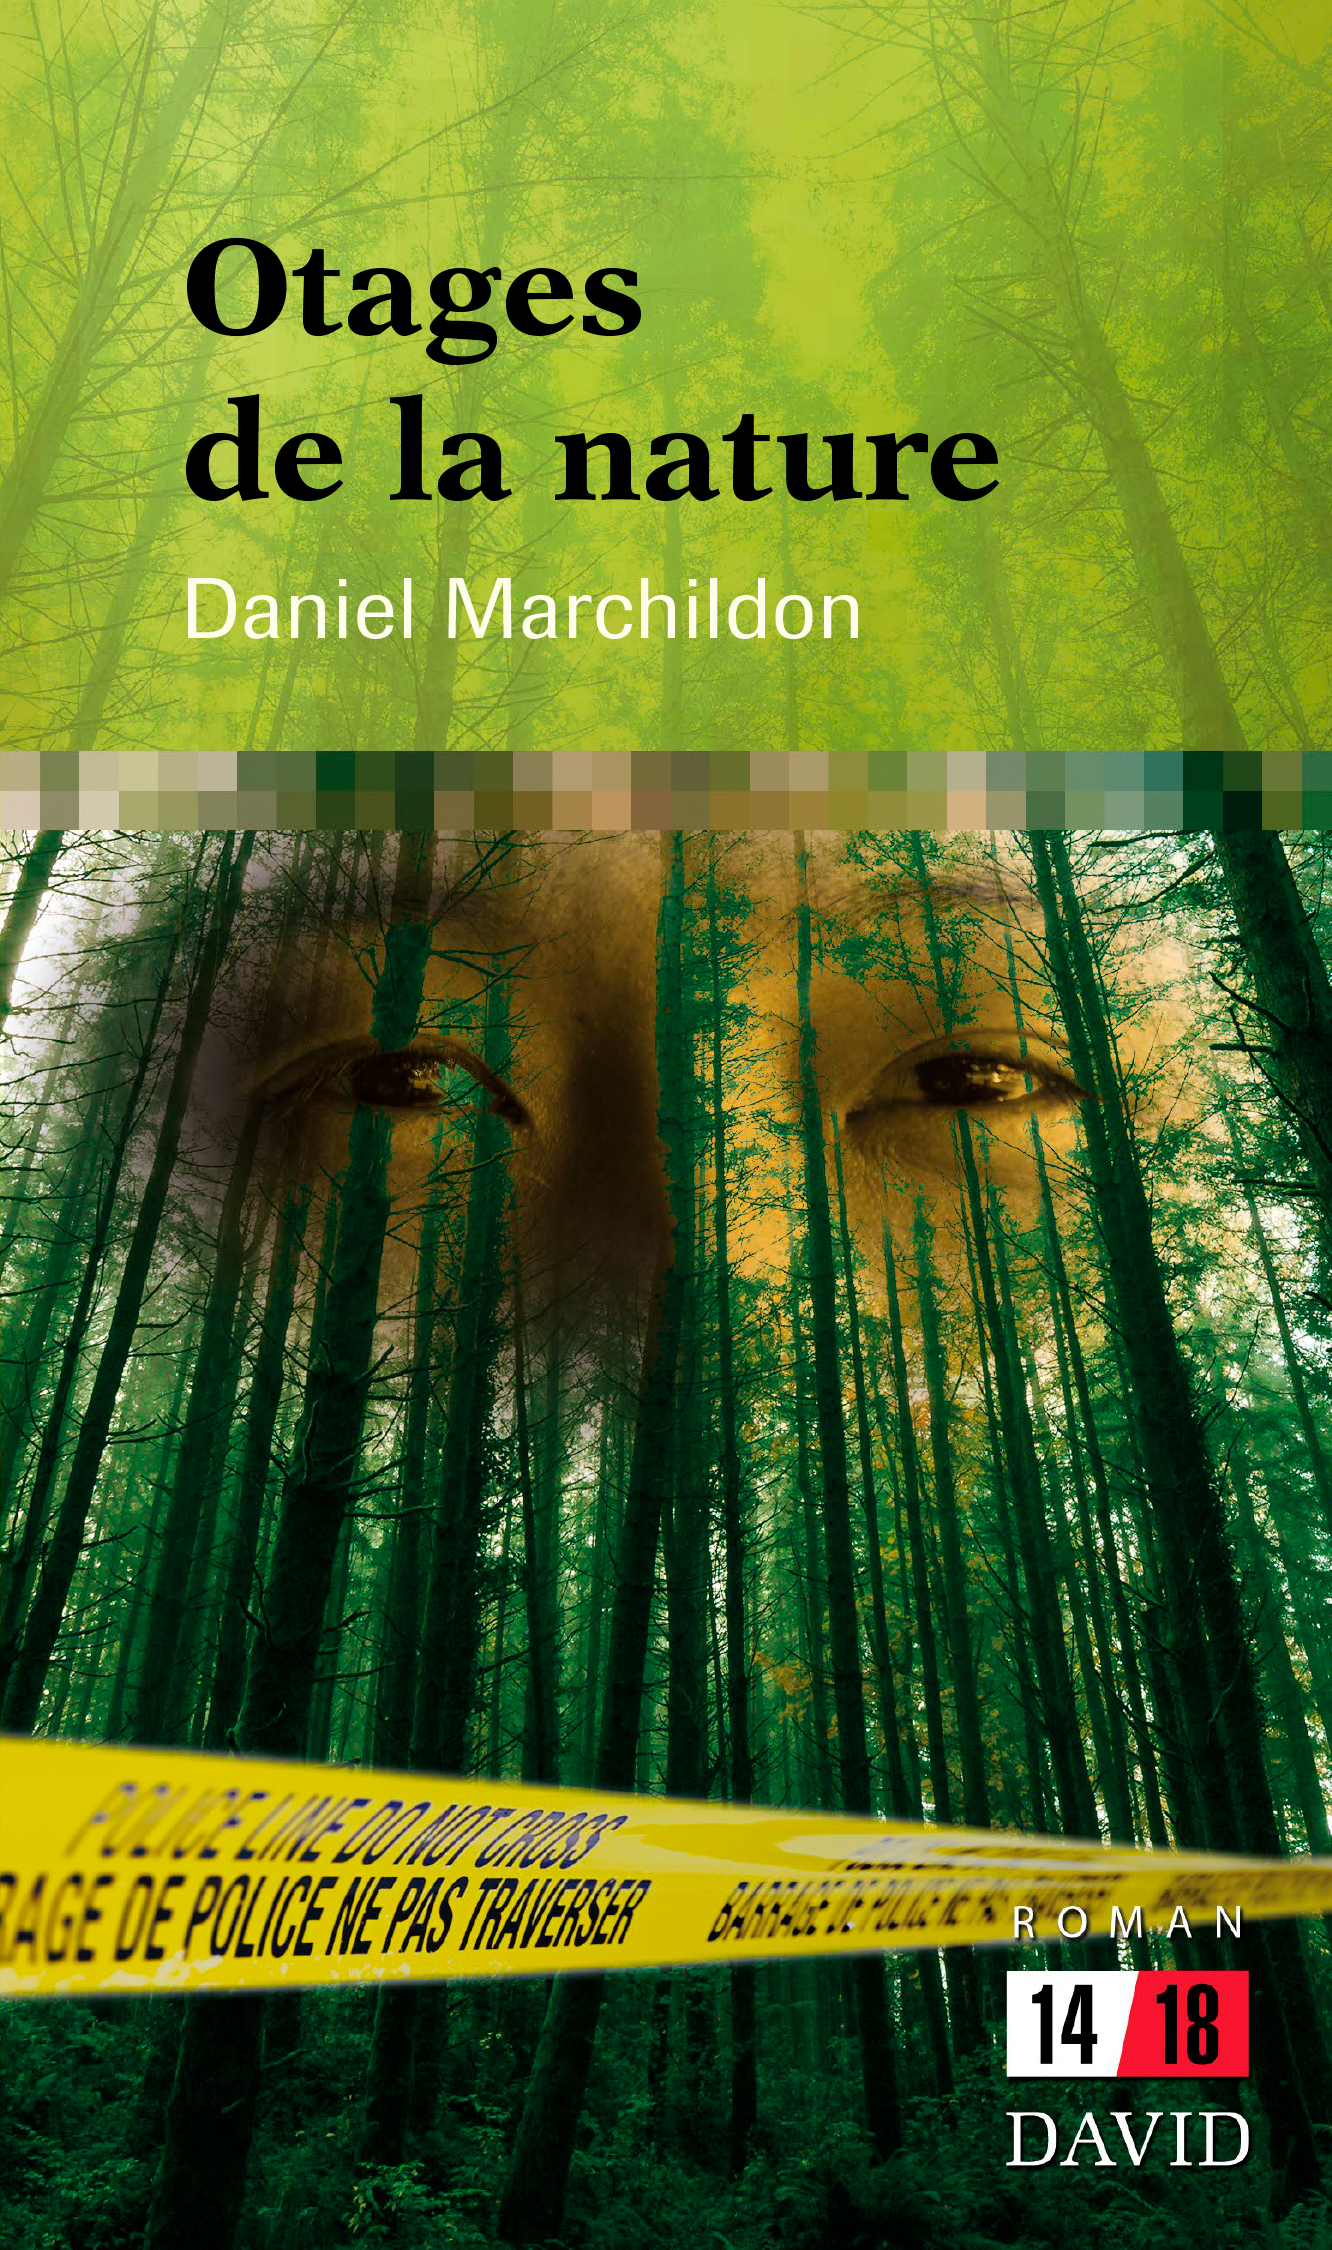 Otages de la nature - Daniel Marchildon